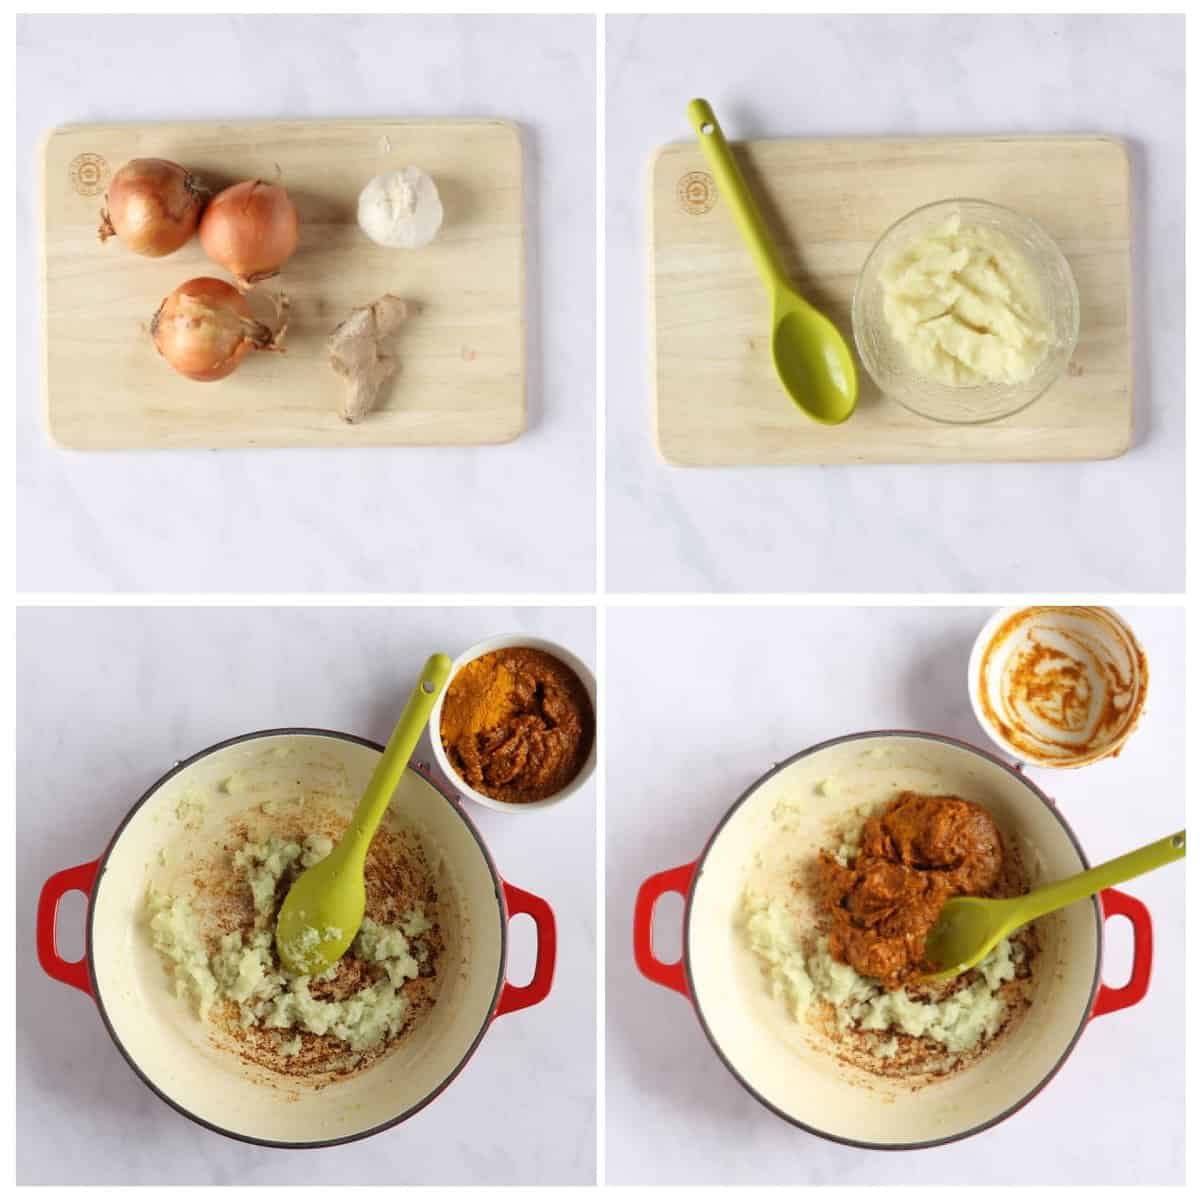 Step by step photo instructions for making the curry paste.